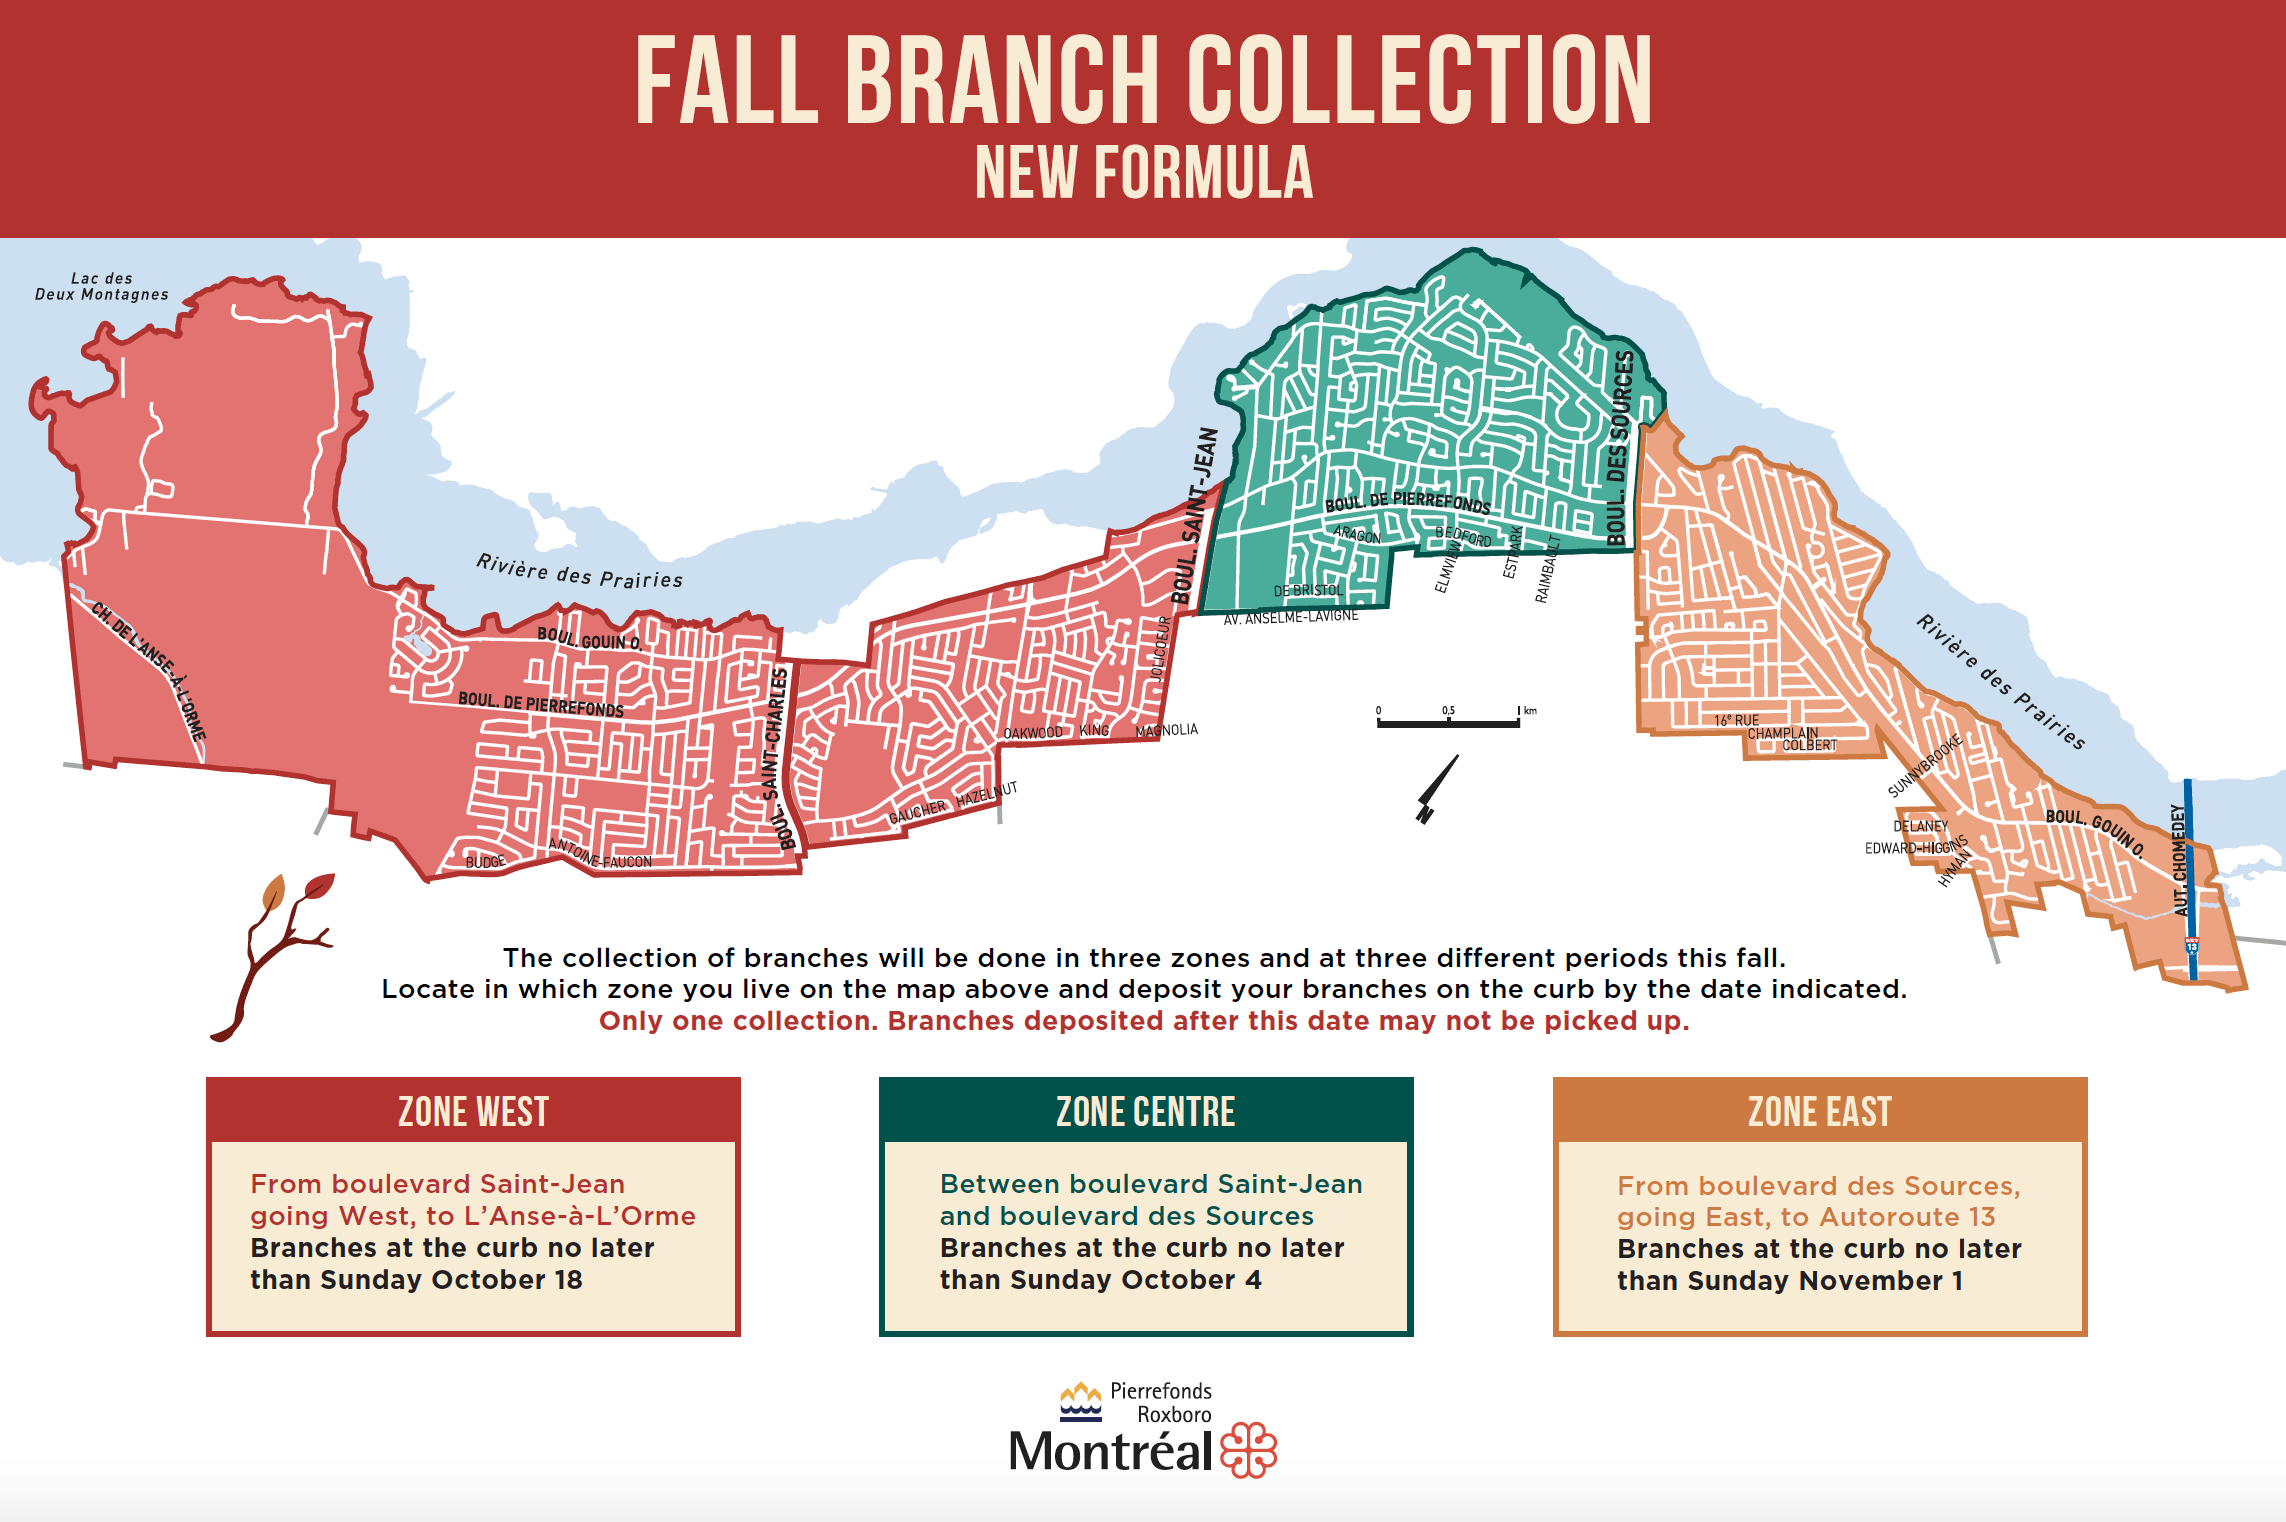 Branch collection MAP - zones and dates